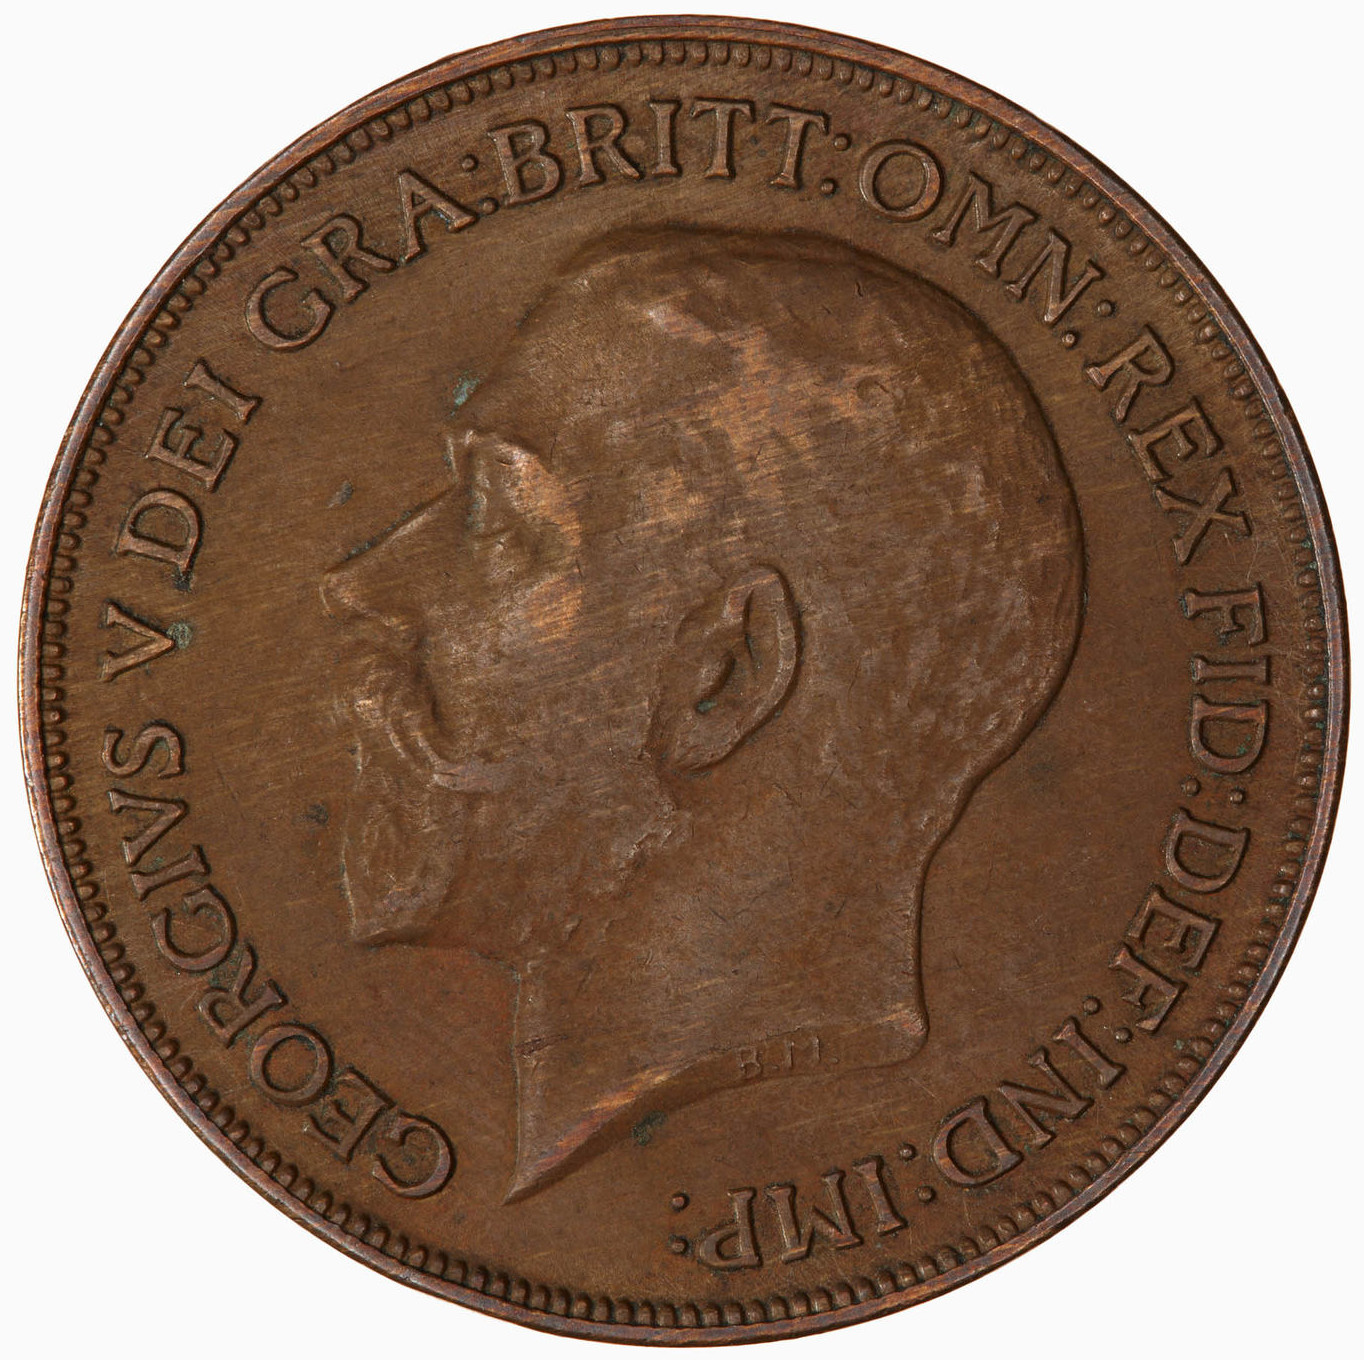 Penny 1920: Photo Coin - Penny, George V, Great Britain, 1920